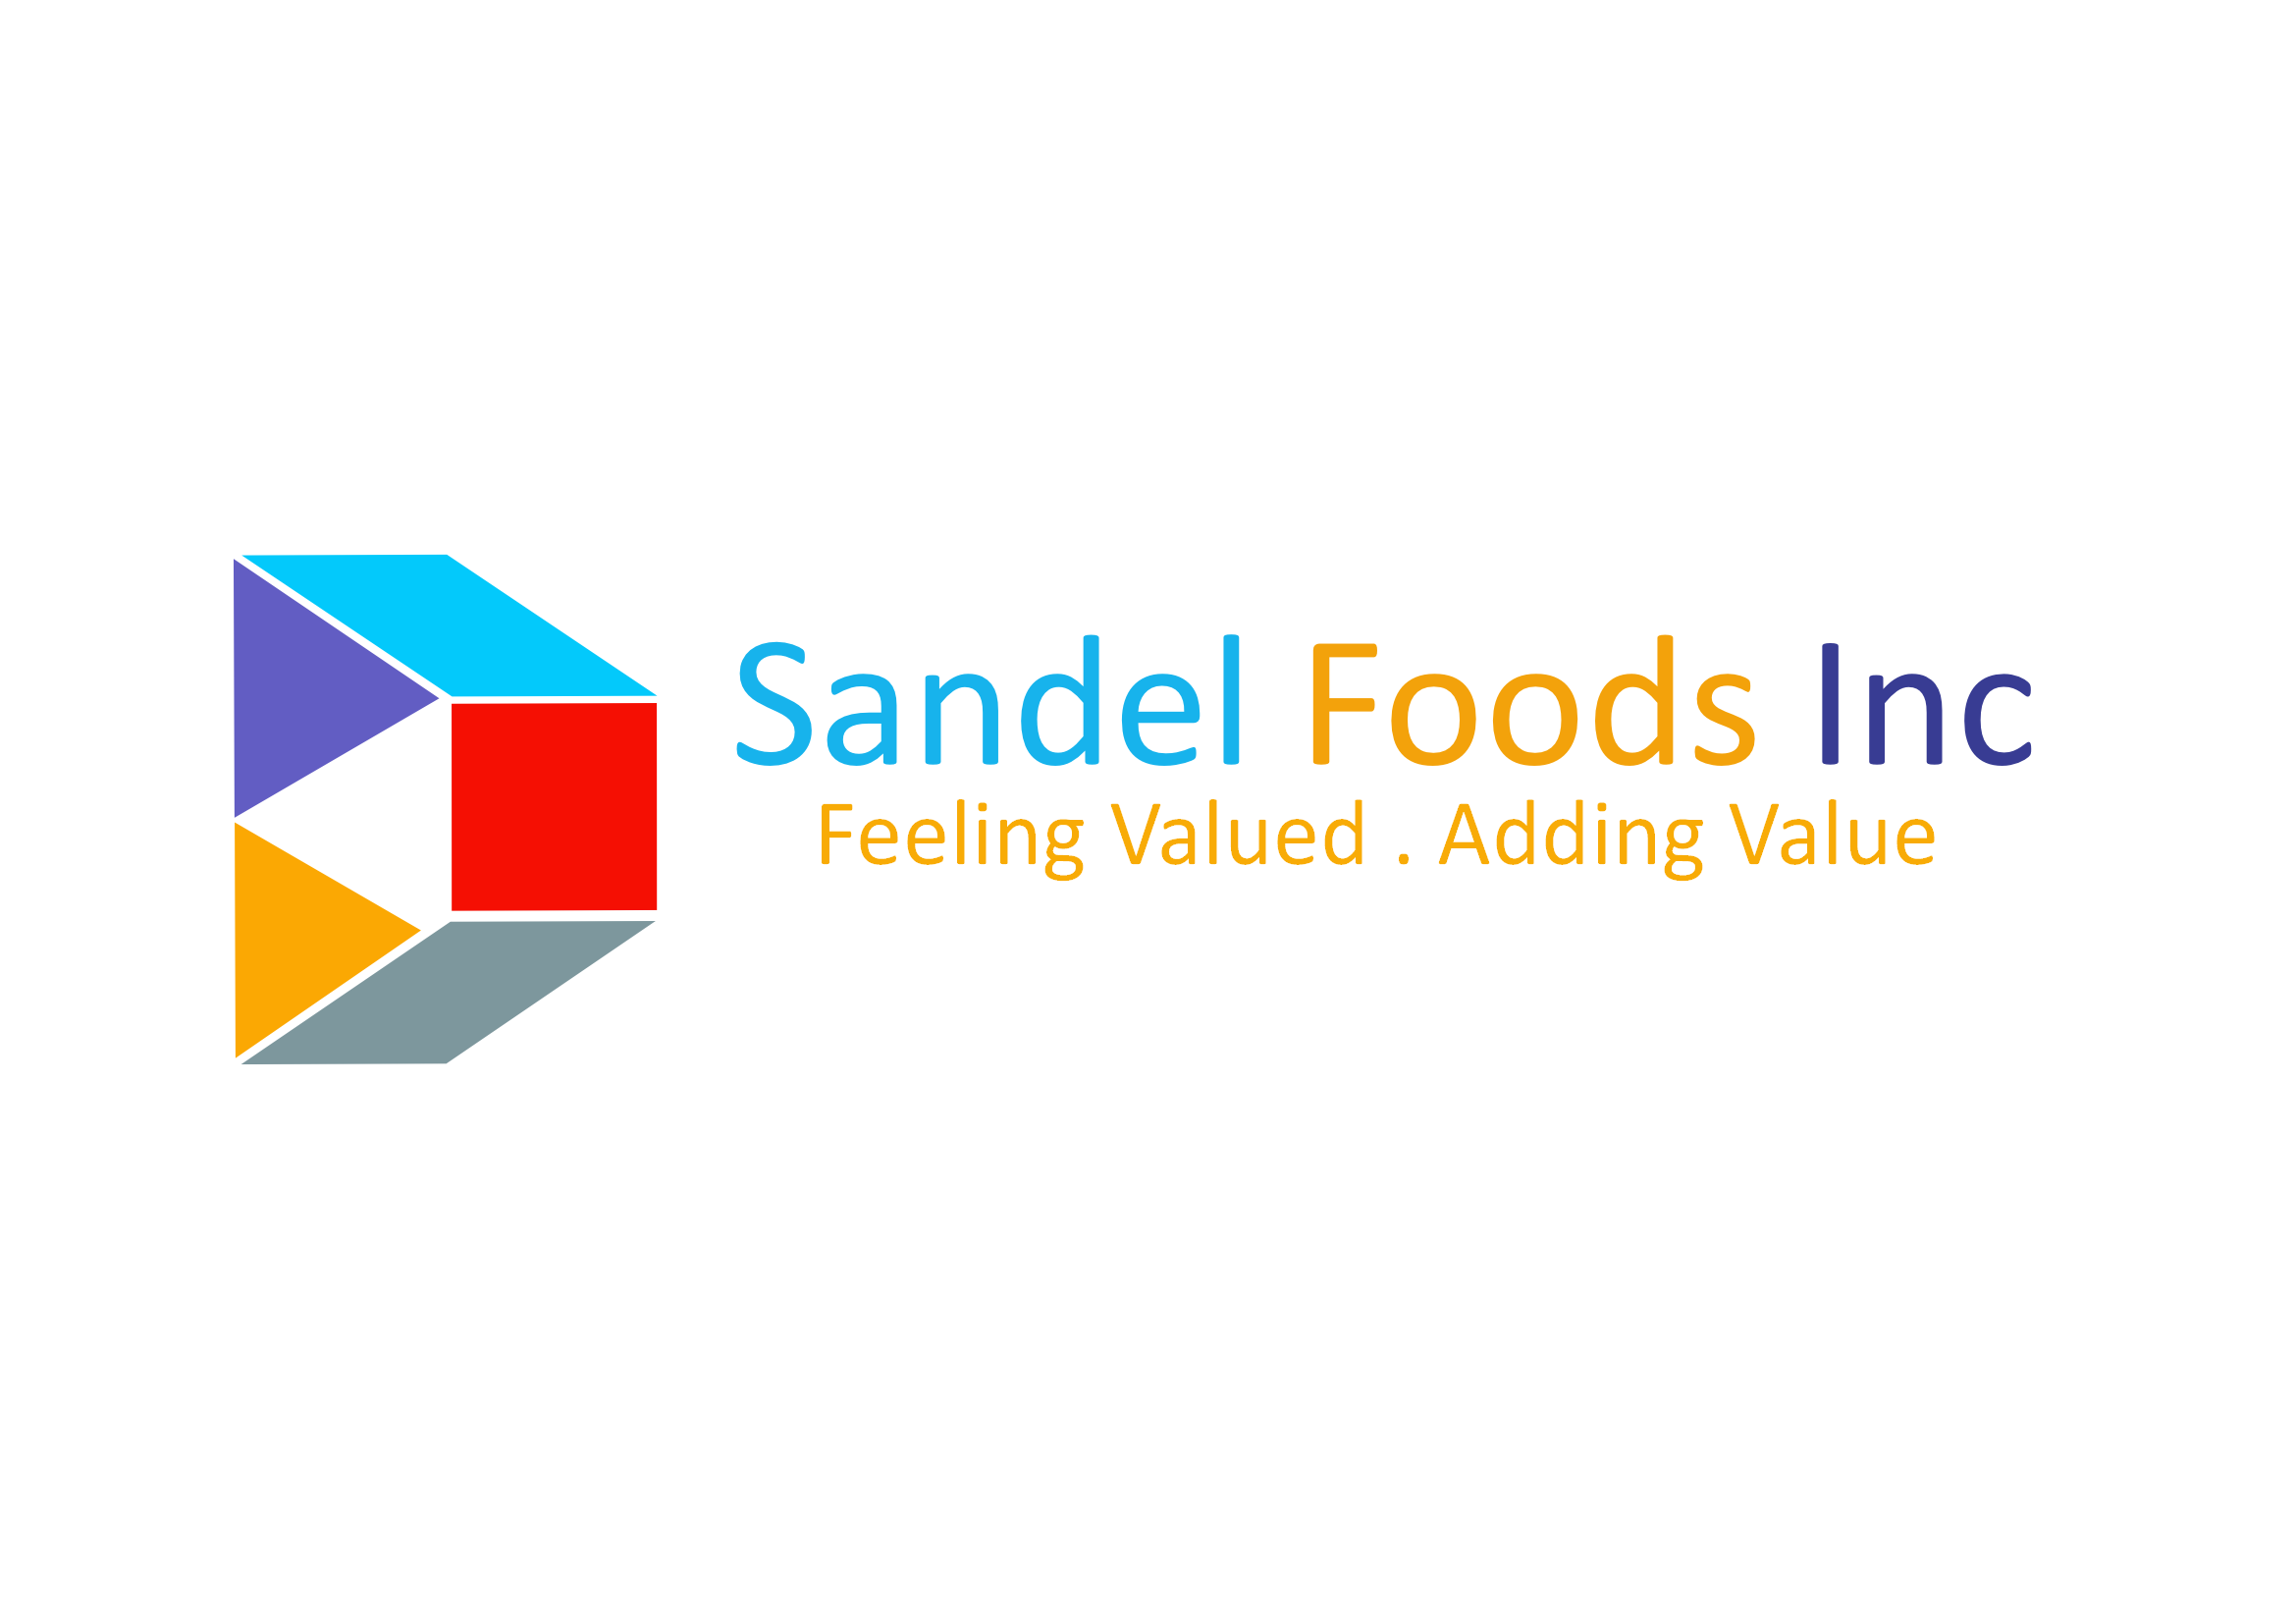 Logo Design by Heri Susanto - Entry No. 16 in the Logo Design Contest Fun Logo Design for Sandel Foods Inc.